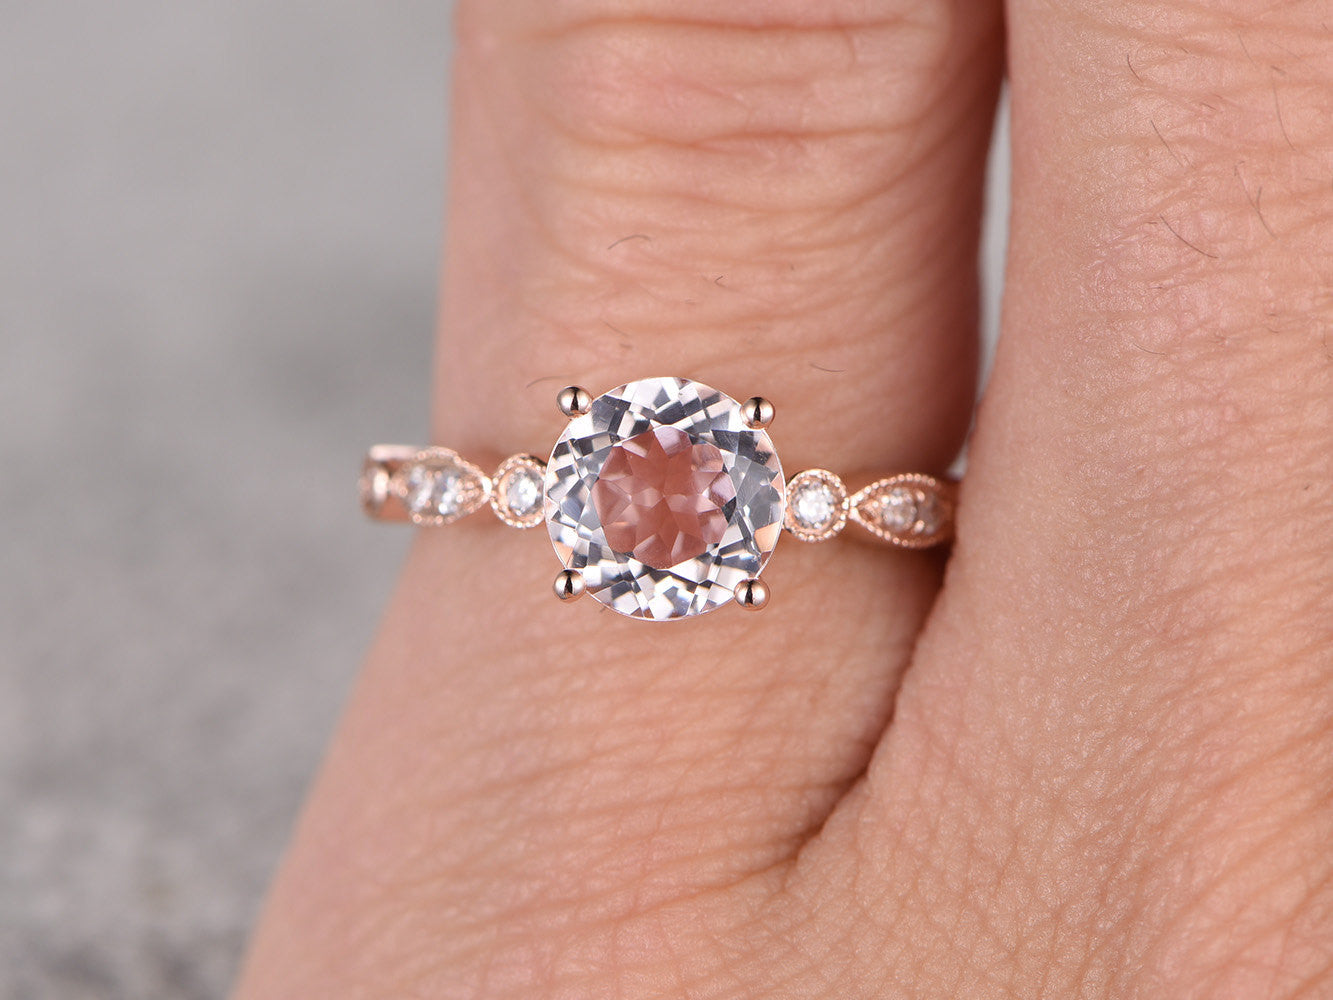 Morganite Engagement ring Rose gold,Diamond wedding band,14k,6.5mm Round Cut,Gemstone Promise Bridal Ring,Art Deco matching band,ball-prong